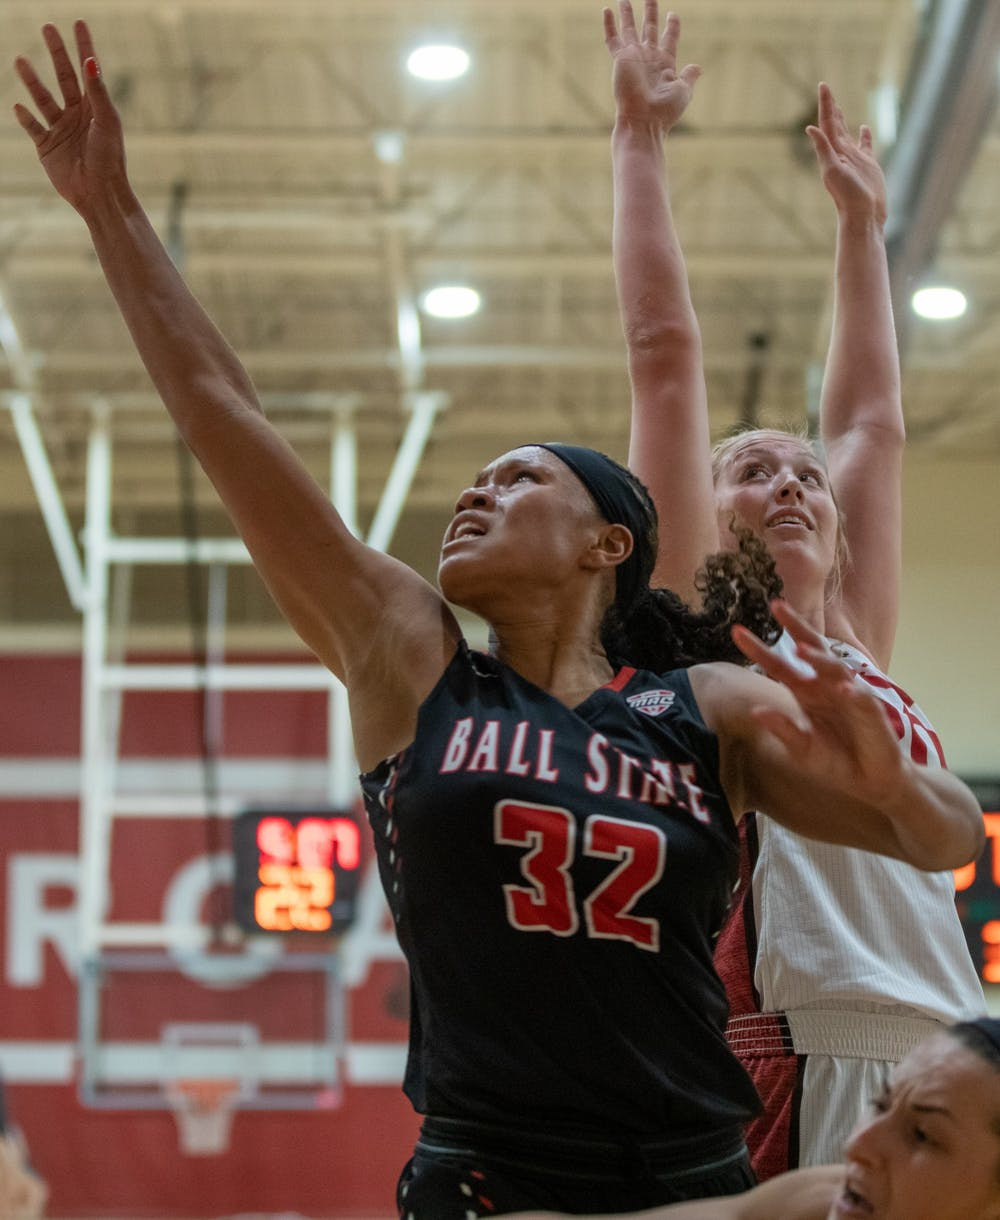 Junior Forward Oshlynn Brown jumps for a rebound Nov. 5, 2019, in the IUPUI Gymnasium in Indianapolis, Ind. IUPUI beat Ball State 65-48. Jacob Musselman, DN